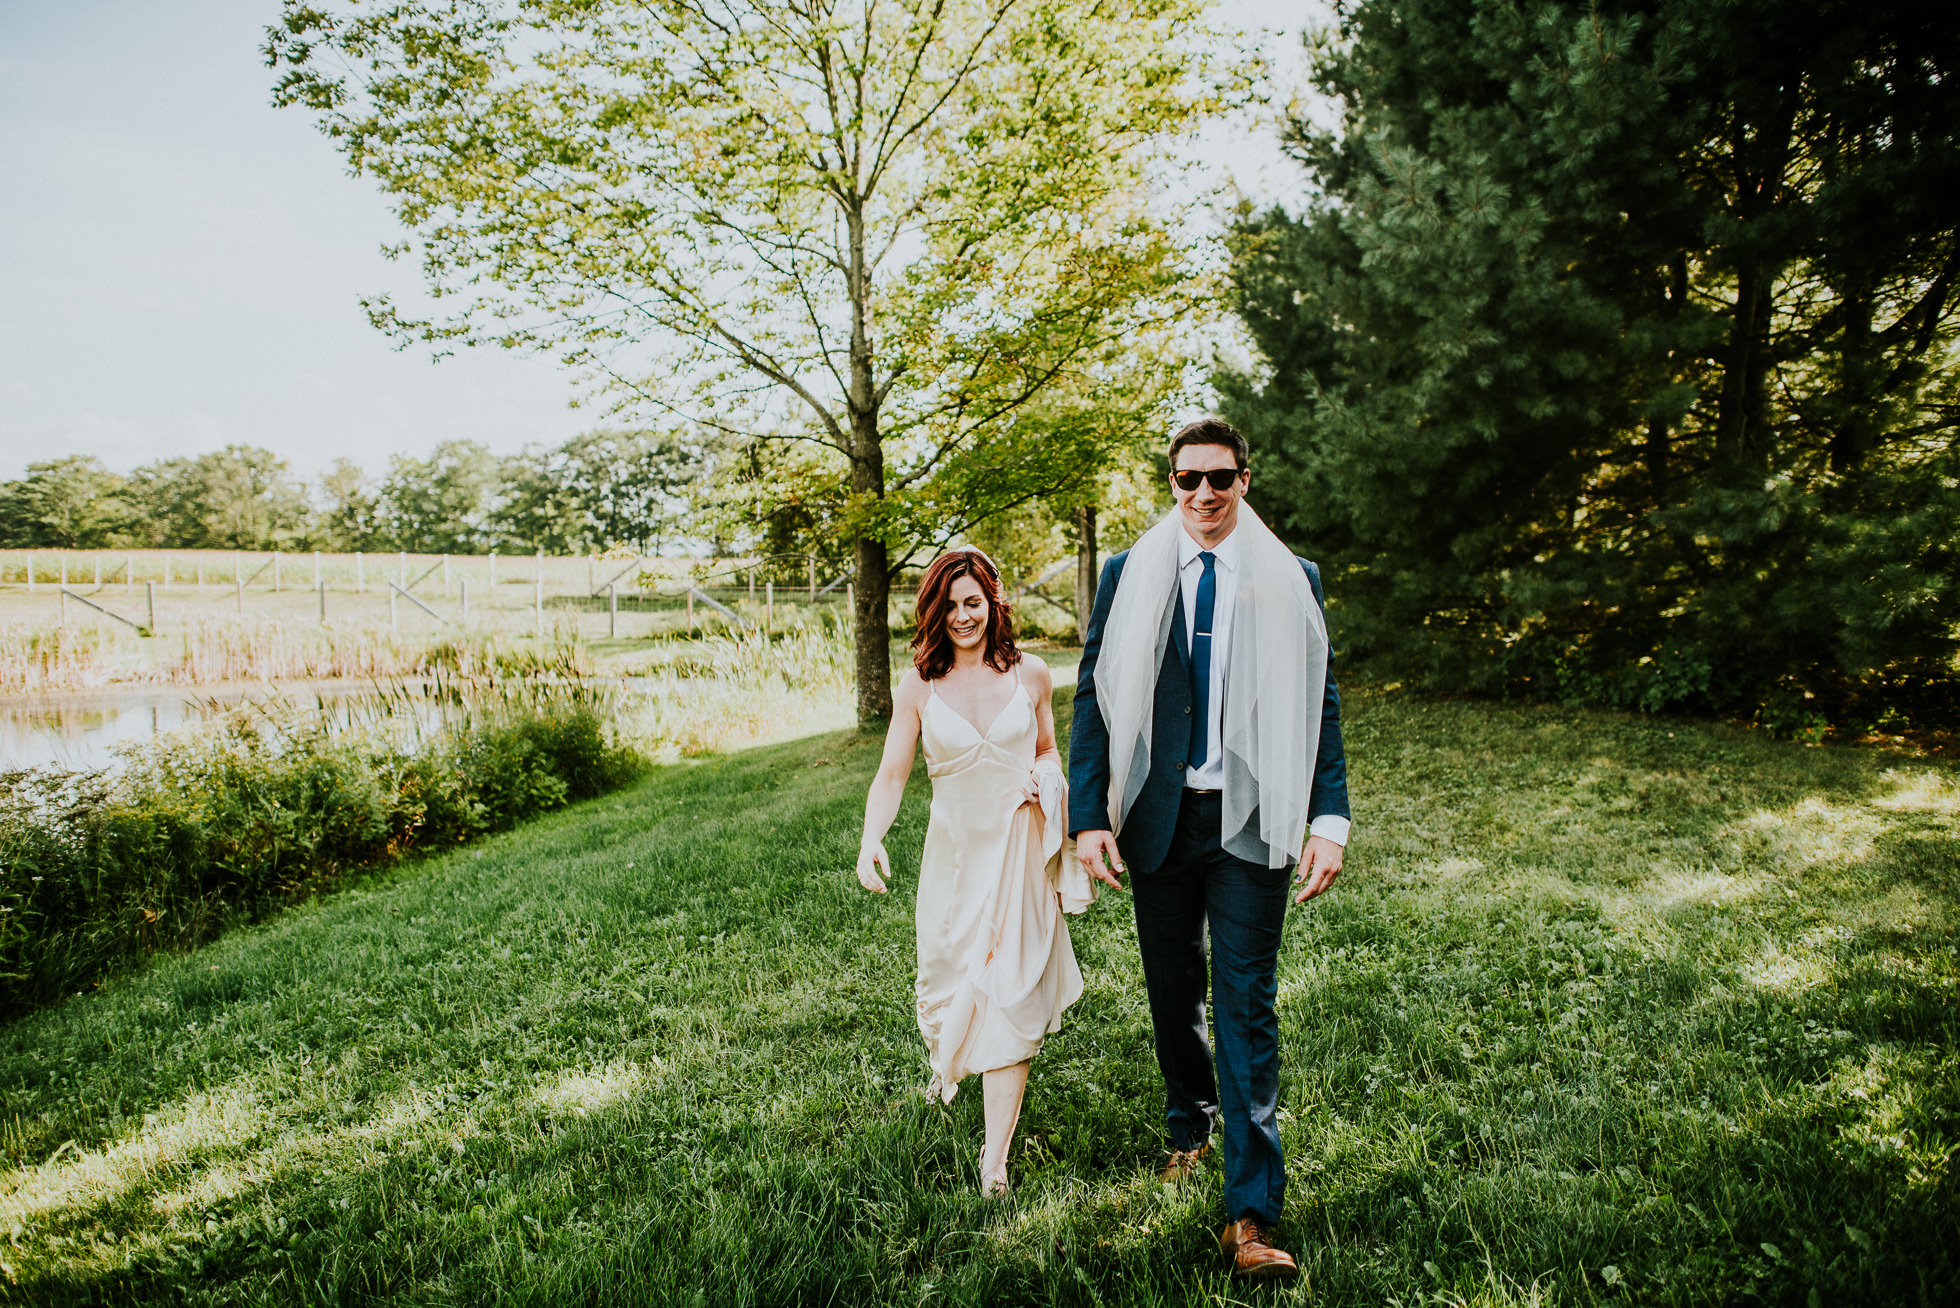 bride and groom walking to ceremony at olde tater barn wedding in central bridge, ny photographed by traverse the tides